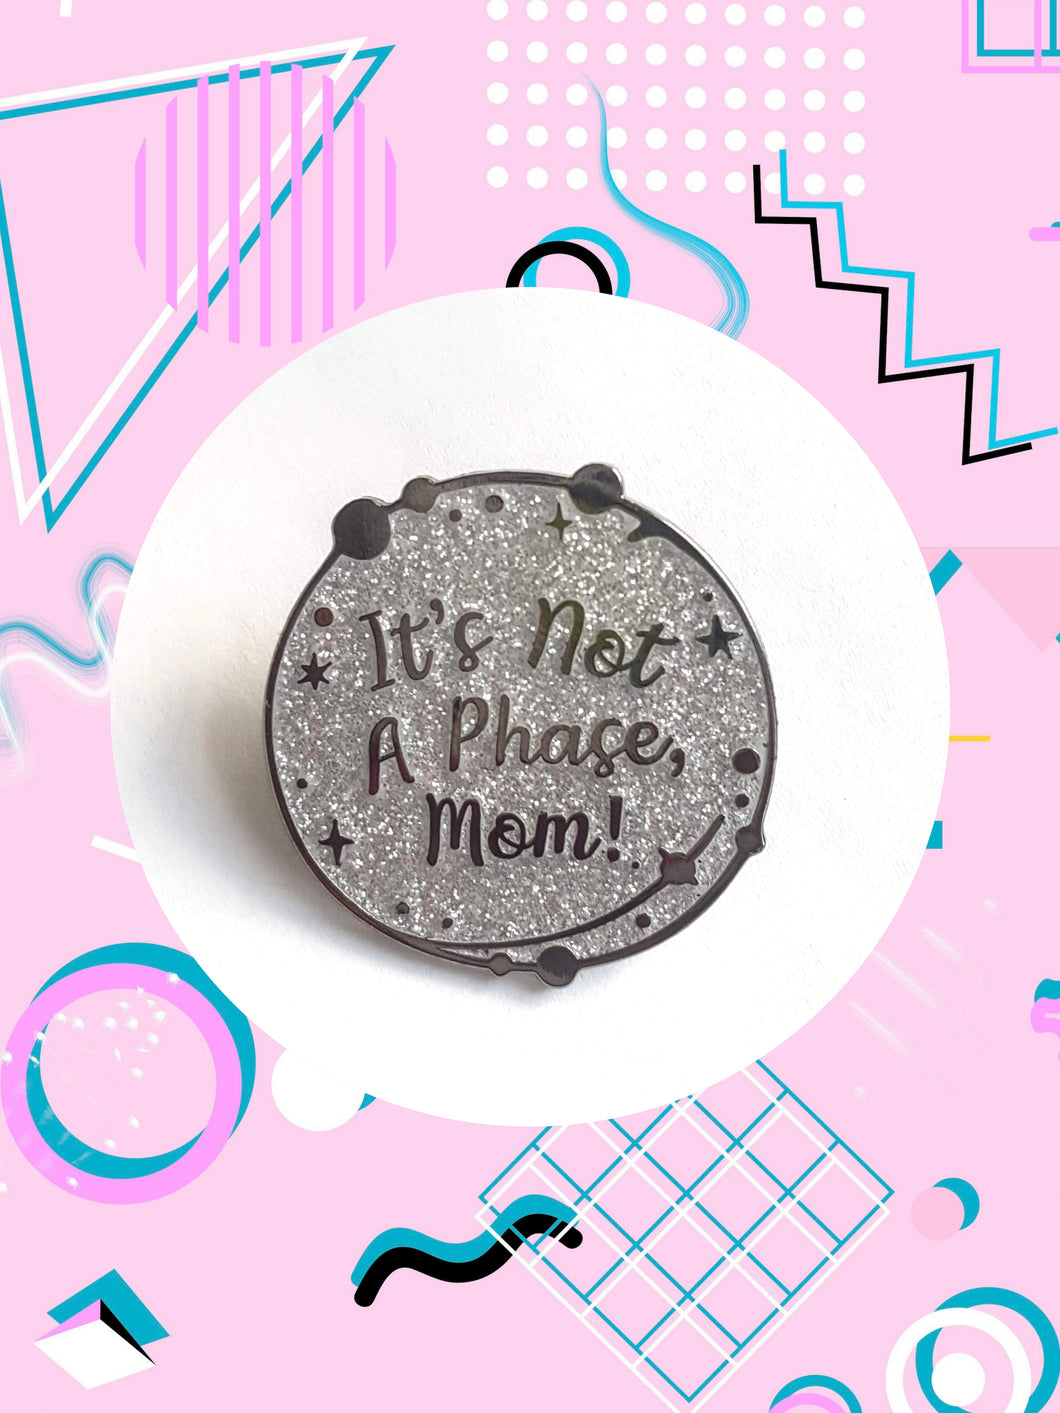 It's Not A Phase Queer Owned Enamel Pin